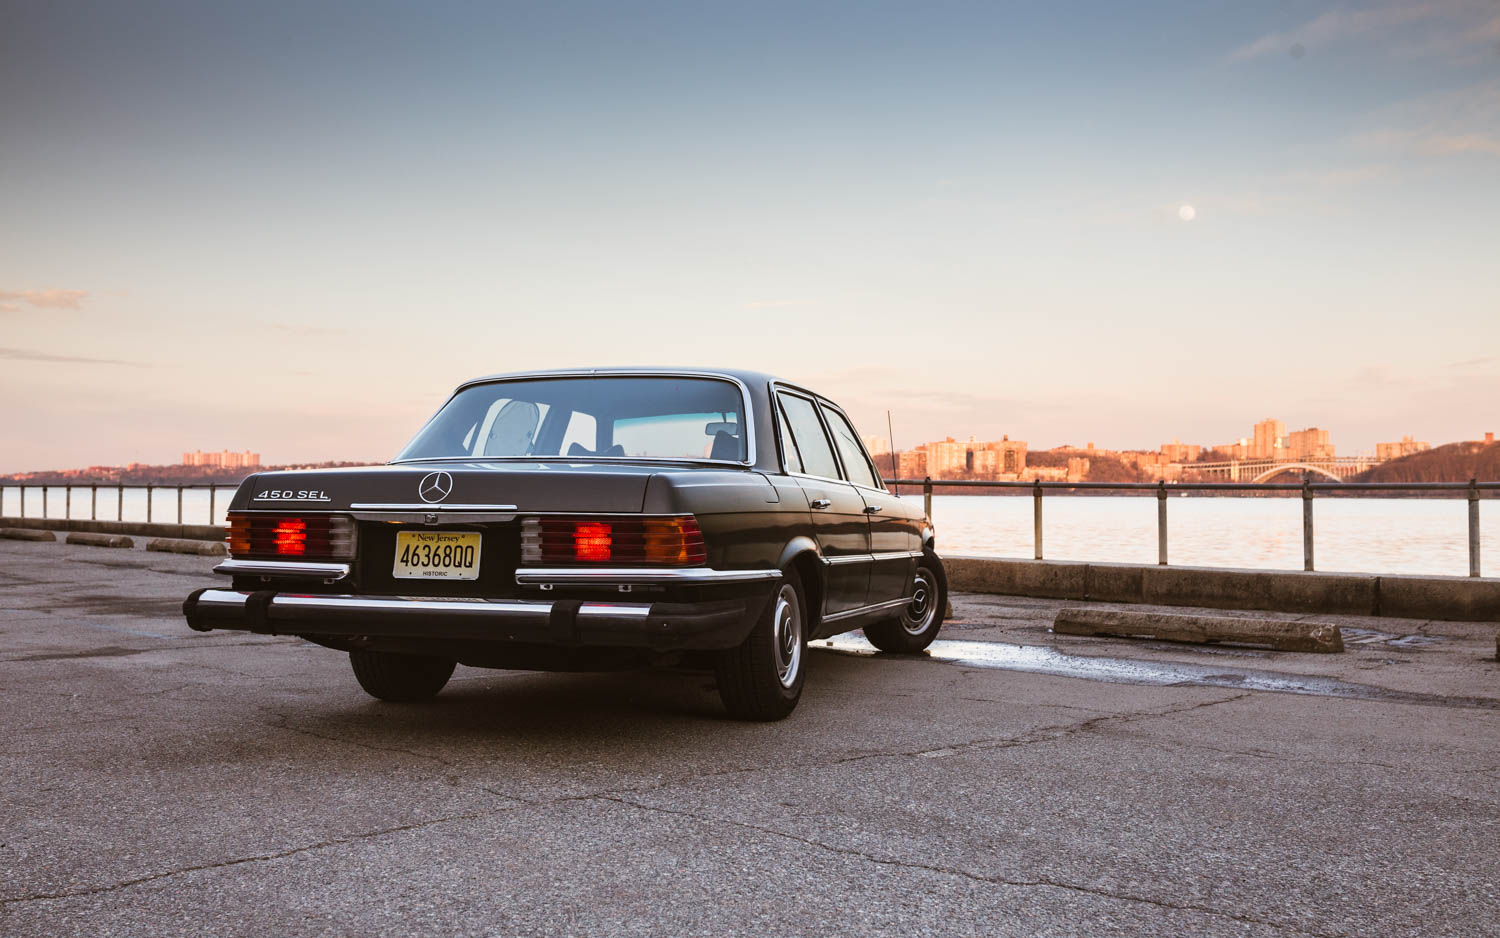 1974 Mercedes-Benz 450SEL at sunset